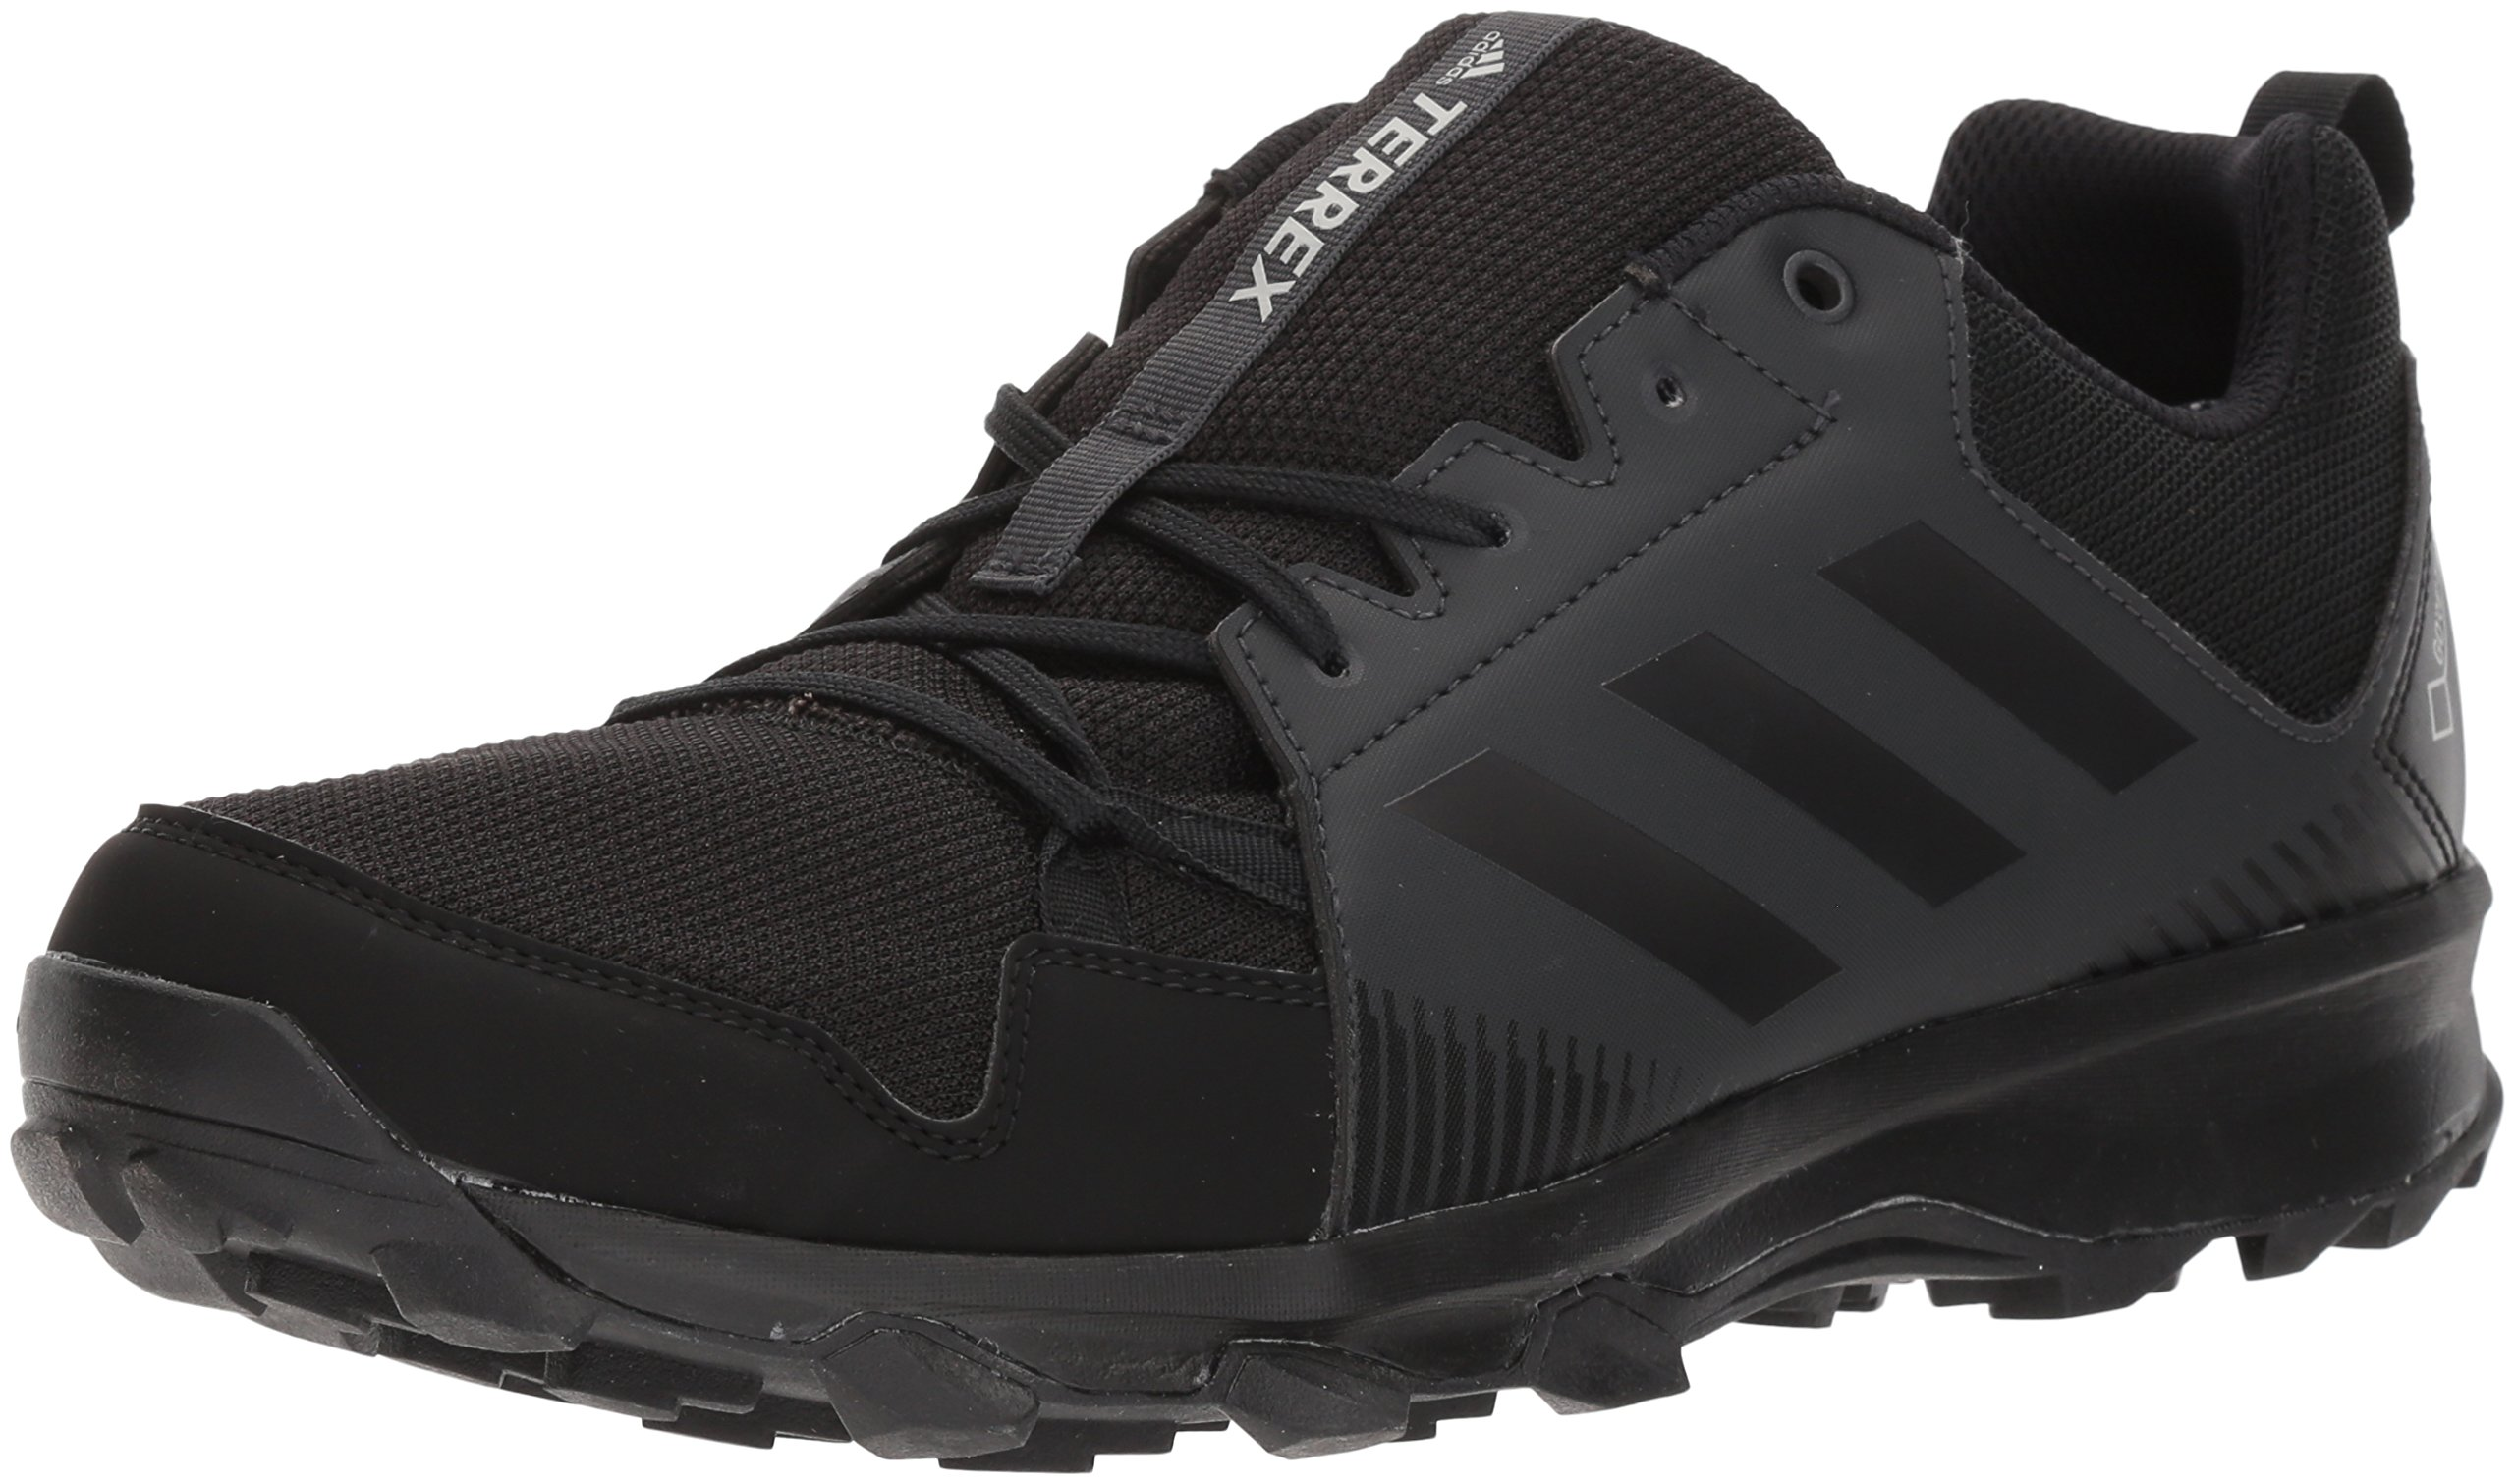 adidas outdoor Men's Terrex Tracerocker GTX Trail Running Shoe, Black/Carbon, 8.5 D US by adidas outdoor